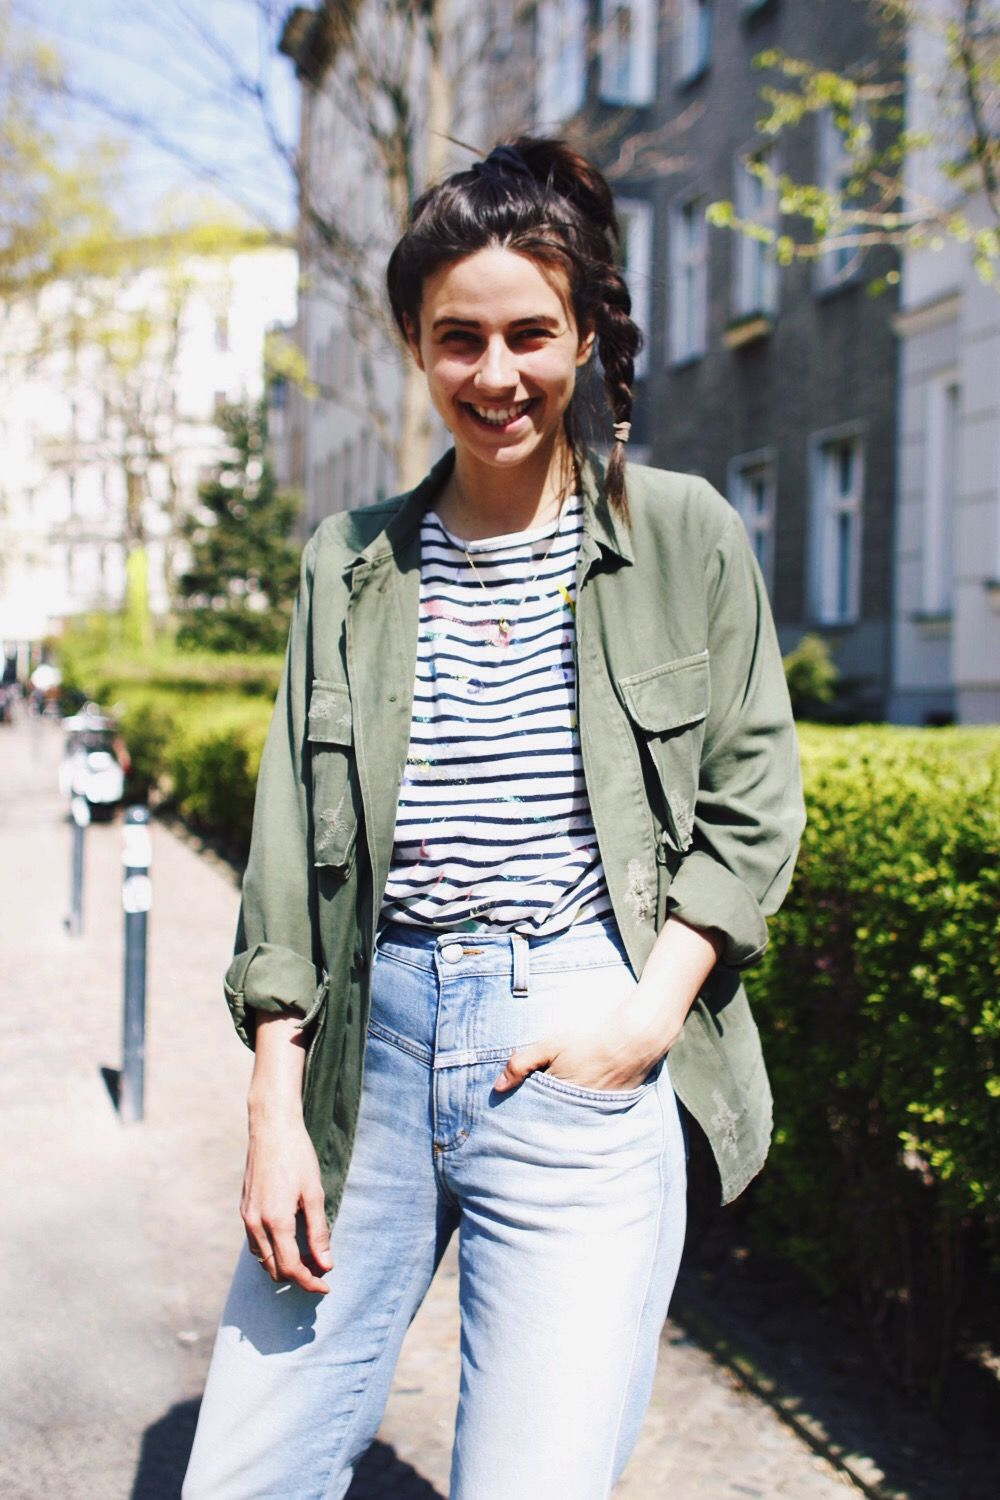 53a2e27843 A striped t-shirt is paired with an army jacket